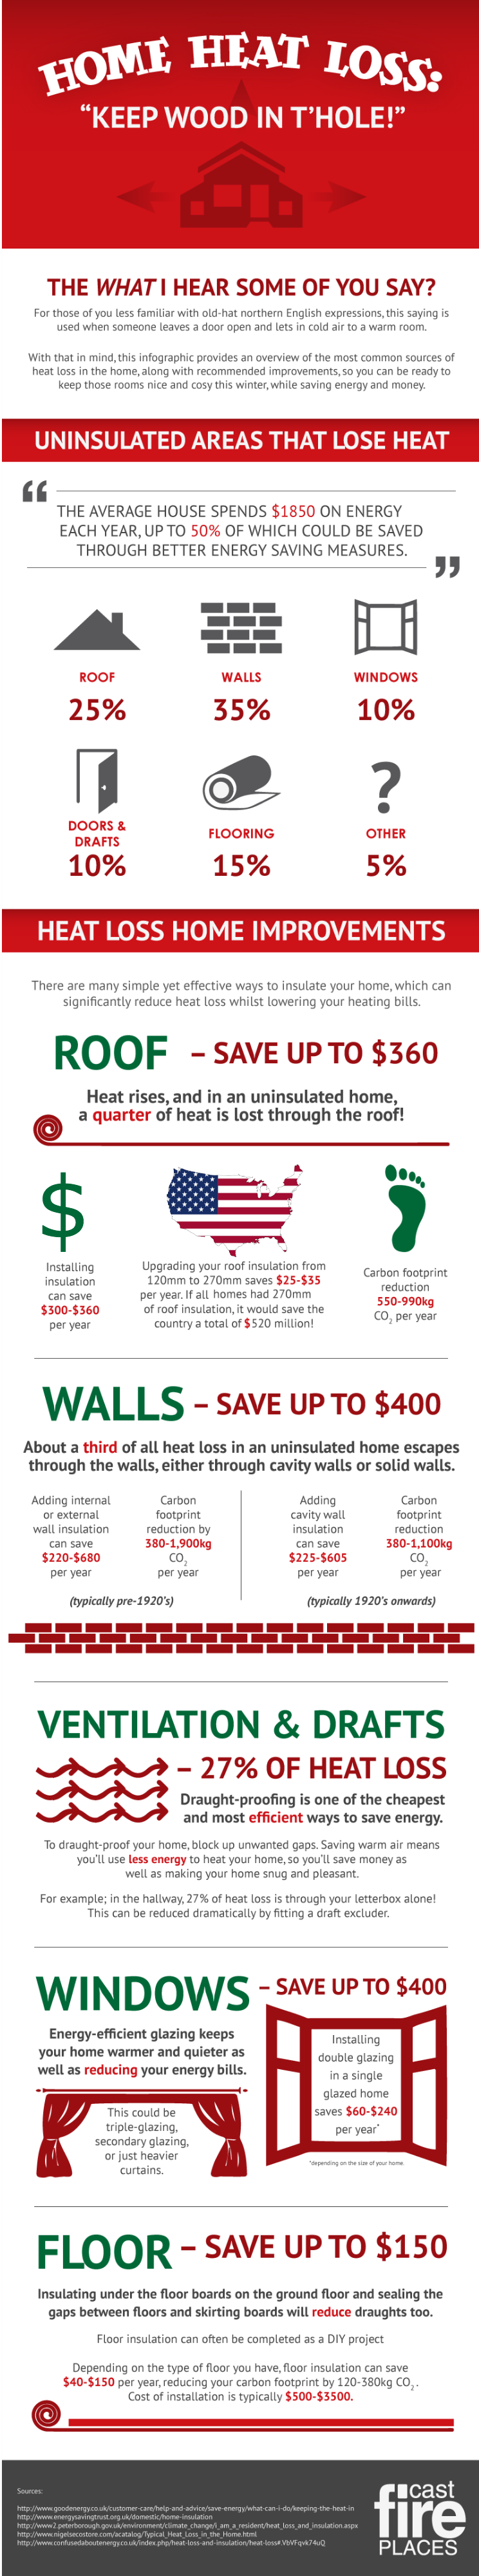 Preventing Home Heat Loss Infographic, plus other ideas to get your home winter ready via Remodelaholic.com #winter #home #homeheatloss #homeimprovement #house